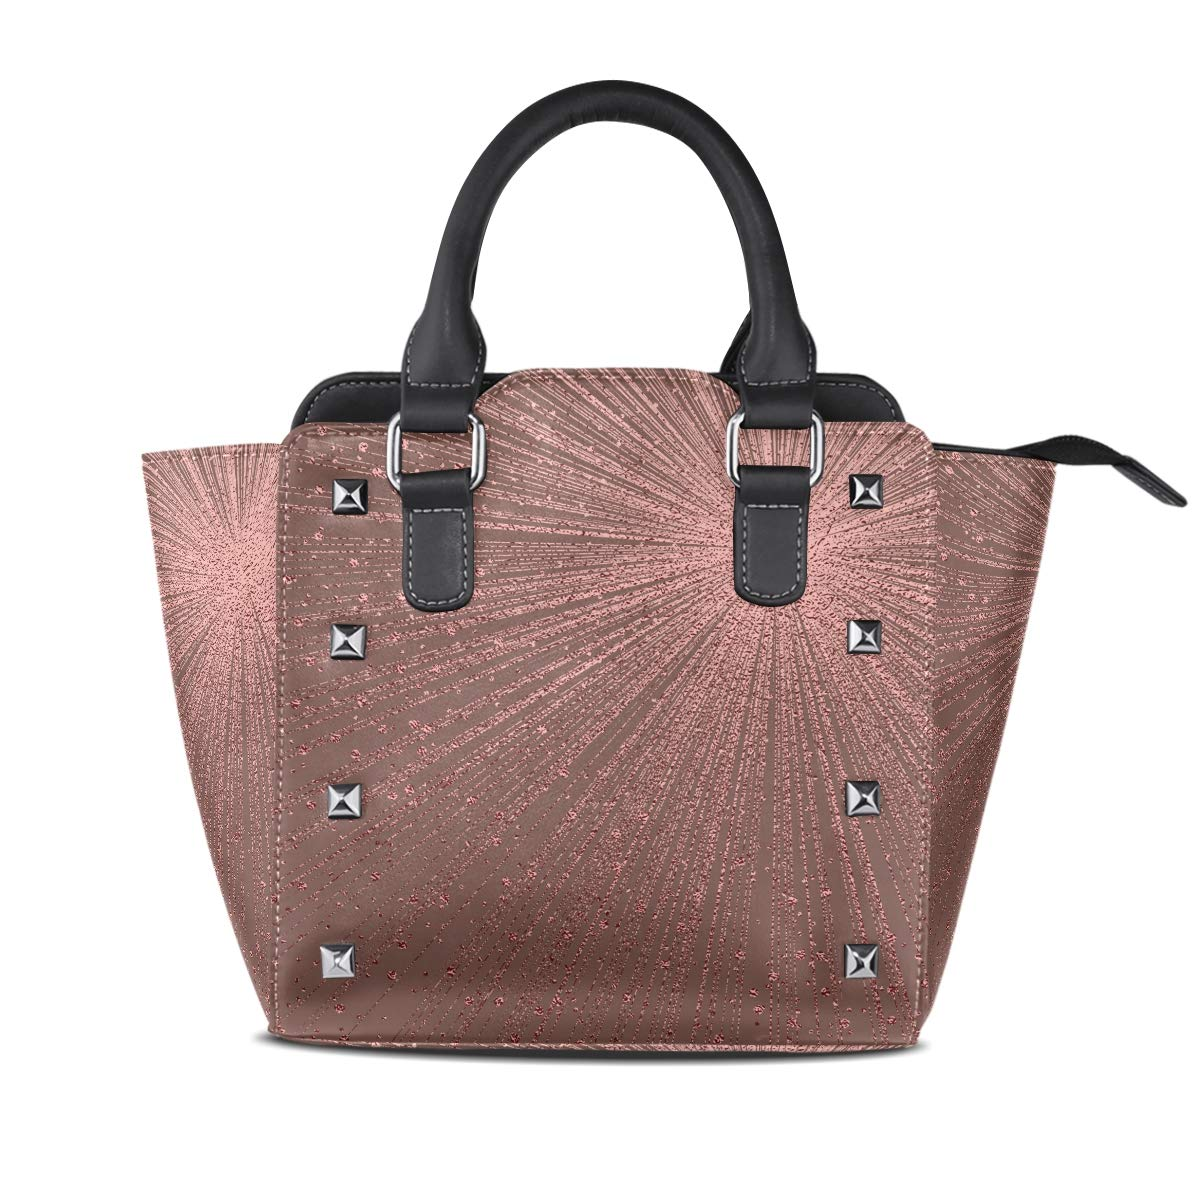 Design3 Handbag bluee color Genuine Leather Tote Rivet Bag Shoulder Strap Top Handle Women